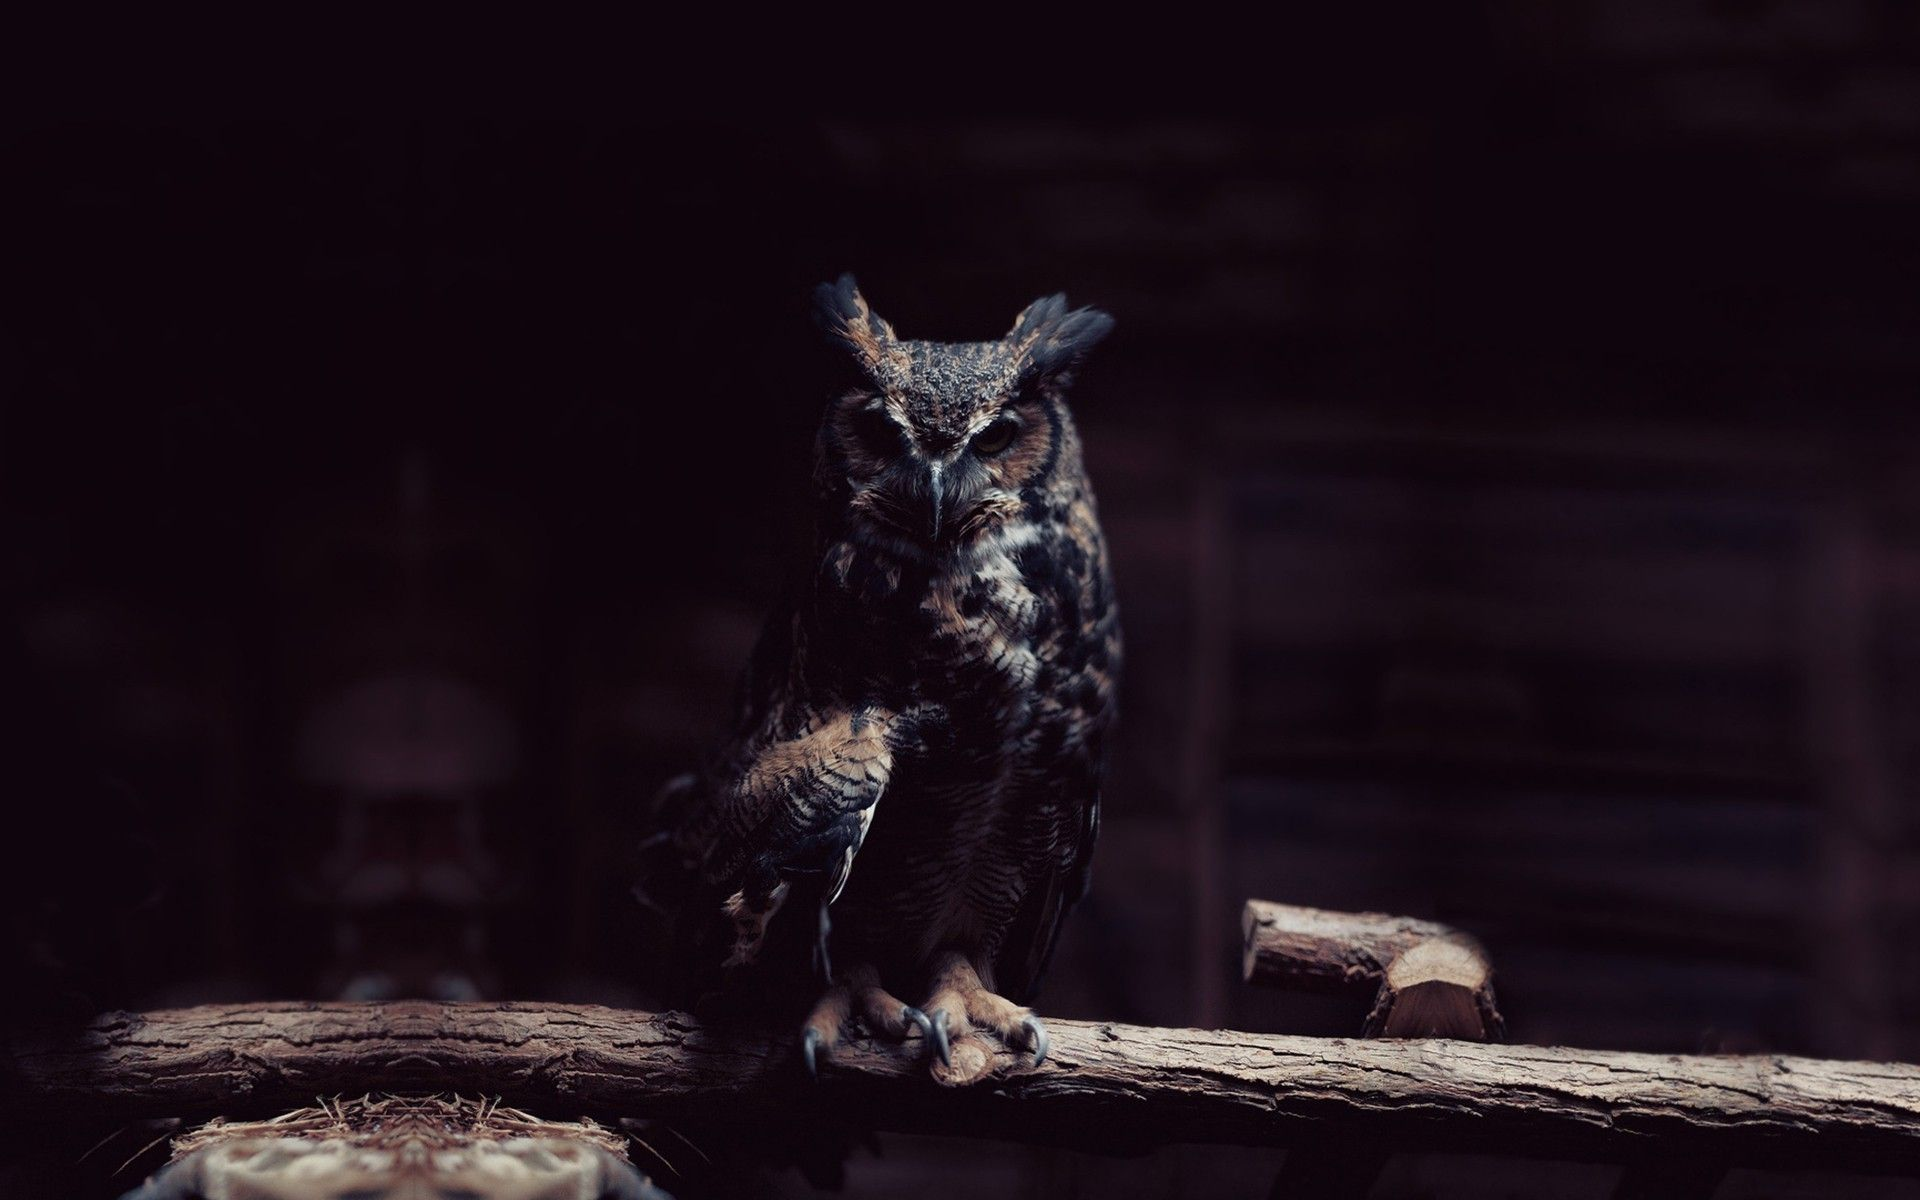 Owl Wallpaper HD World's Greatest Art Site Owl